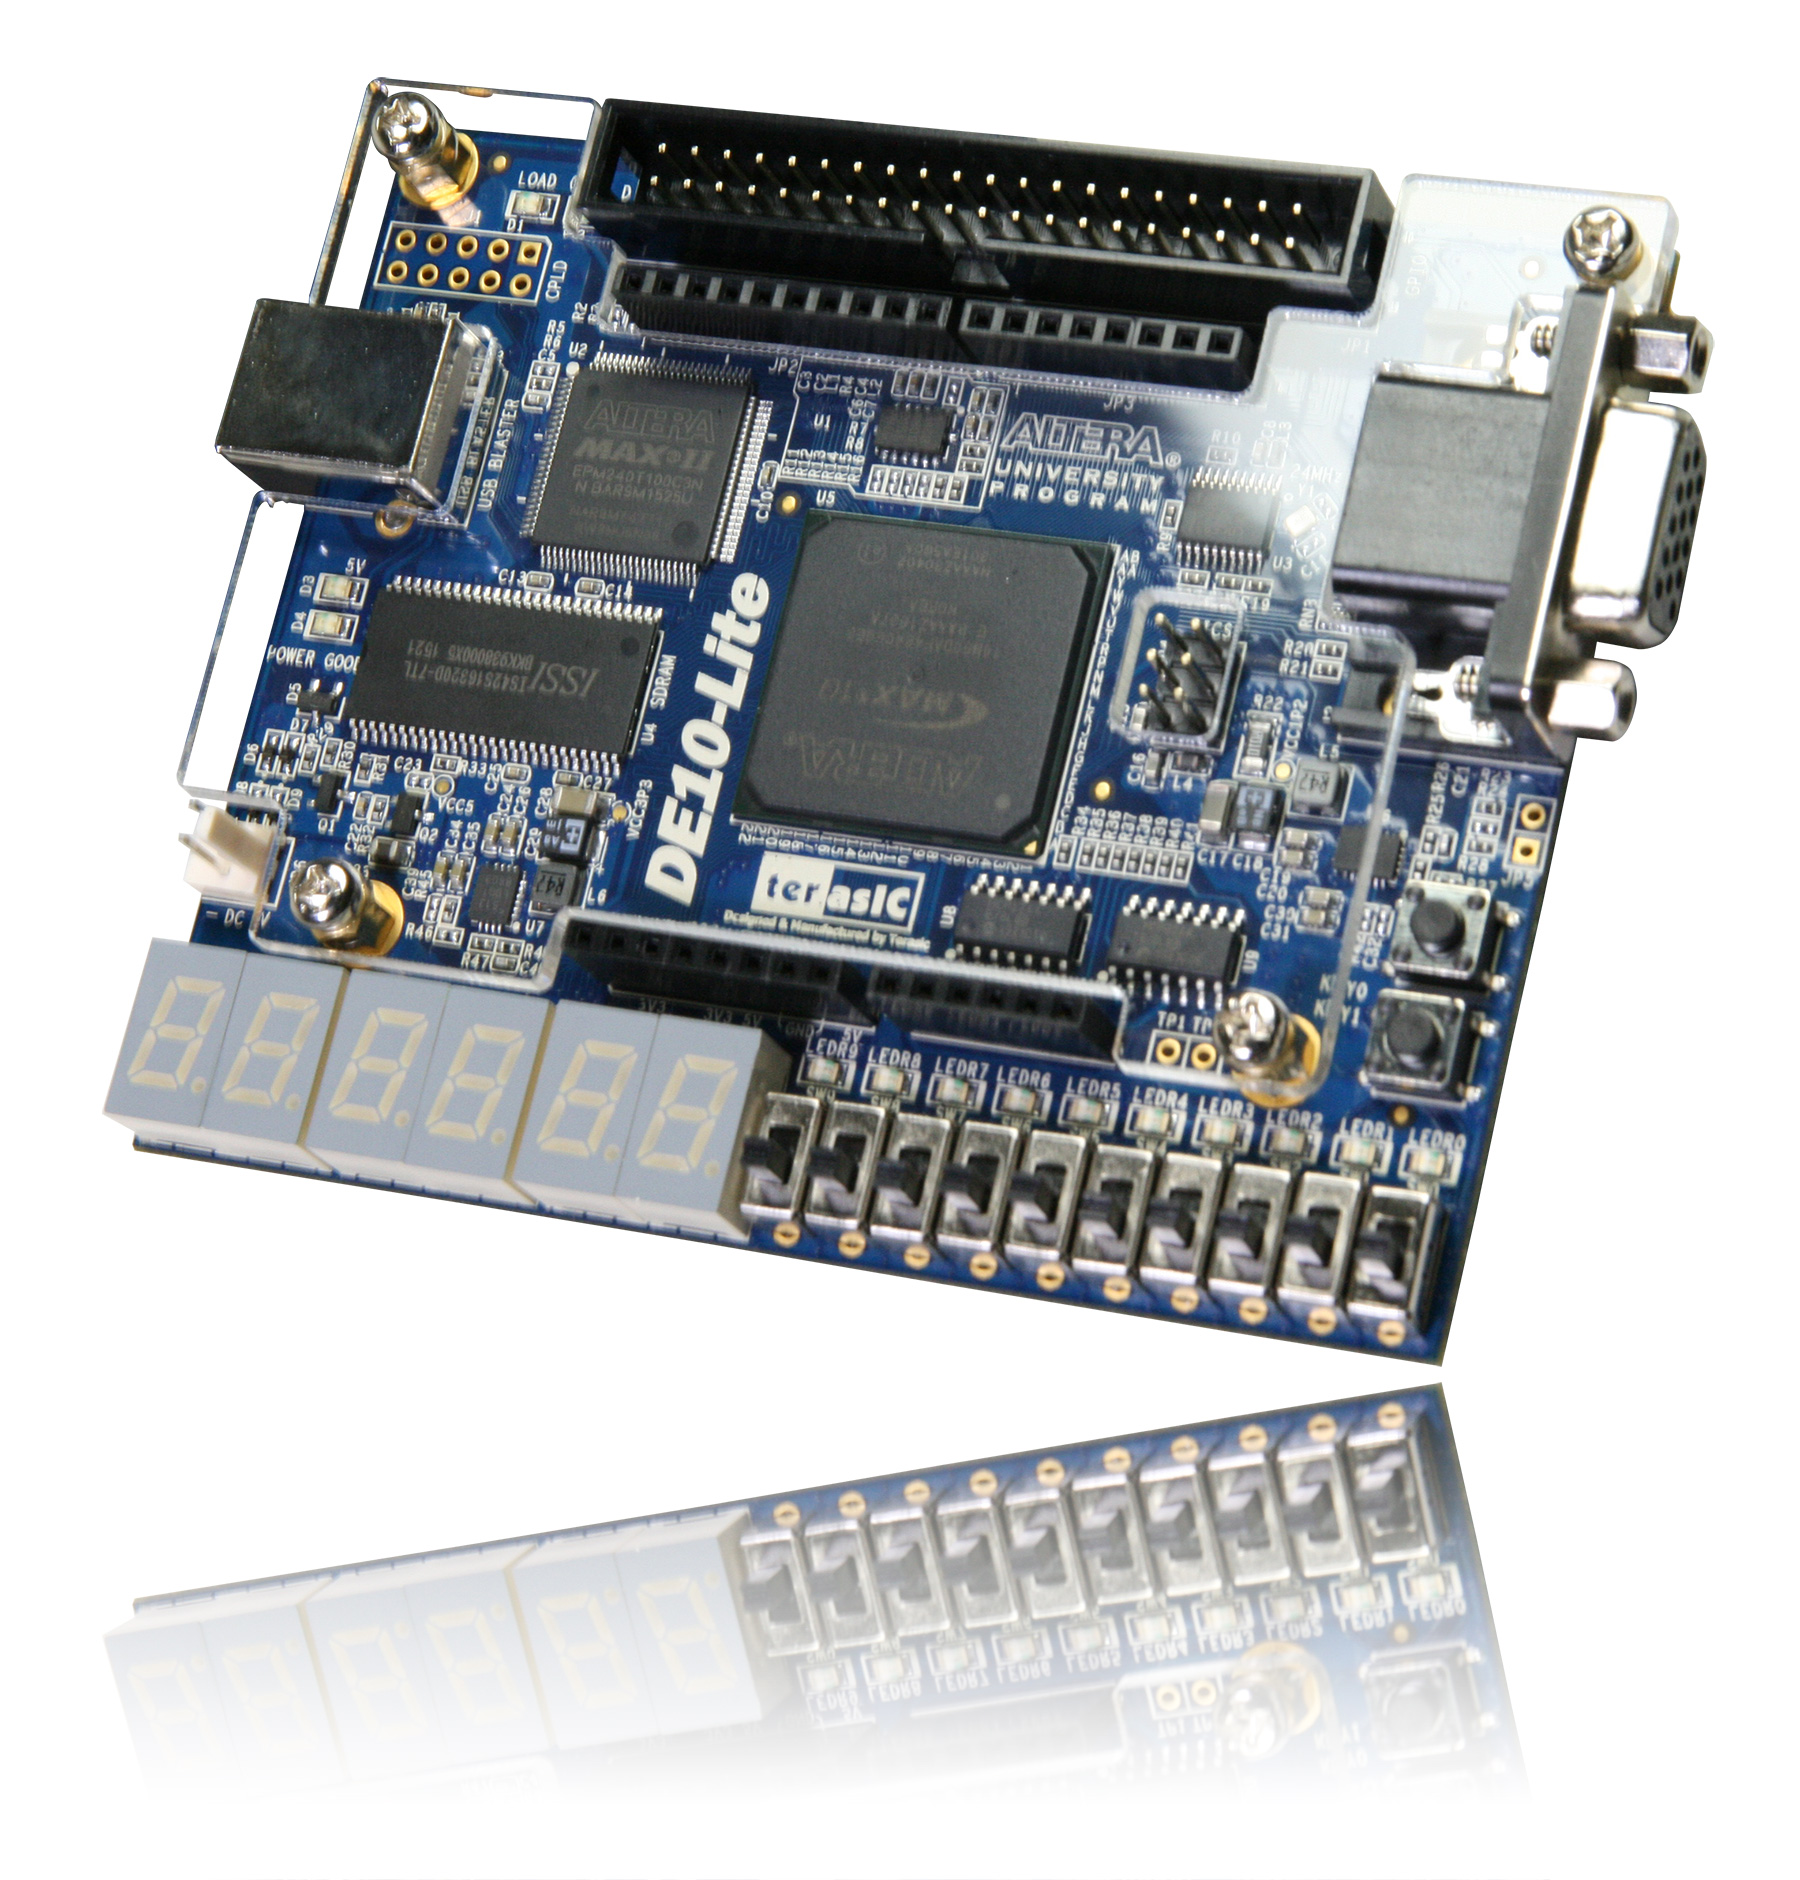 Terasic De Main Boards Max De10 Lite Board Buy Integrated Electronics Analog And Digital Circuit English 2nd The Utilizes Maximum Capacity 10 Fpga Which Has Around 50k Logic Elementsles On Die To Converter Adc